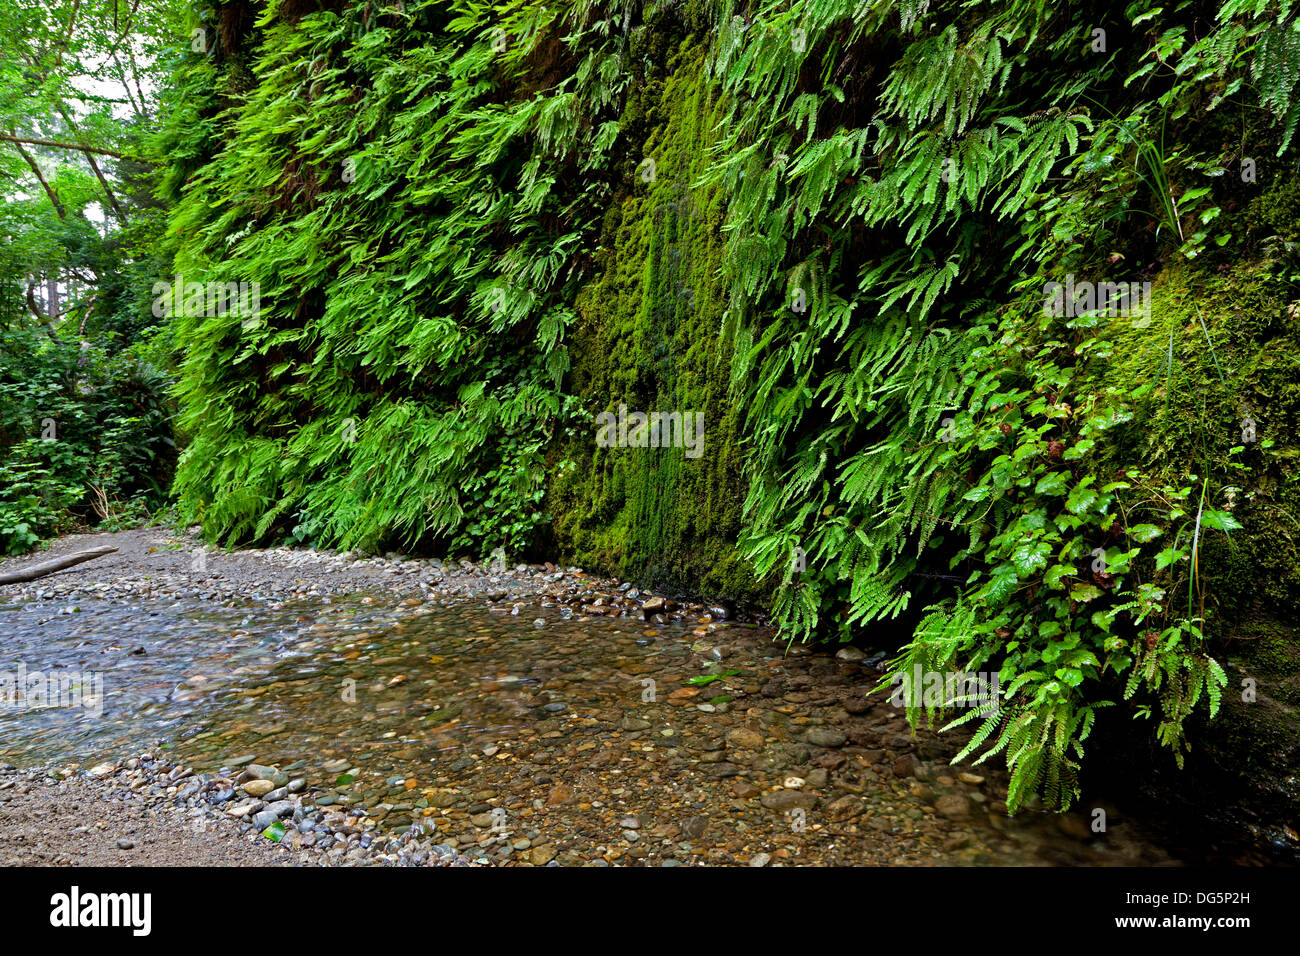 Home Creek flows past the fern and moss covered walls of Fern Canyon in Northern California's Prairie Creek Redwoods State Park. - Stock Image